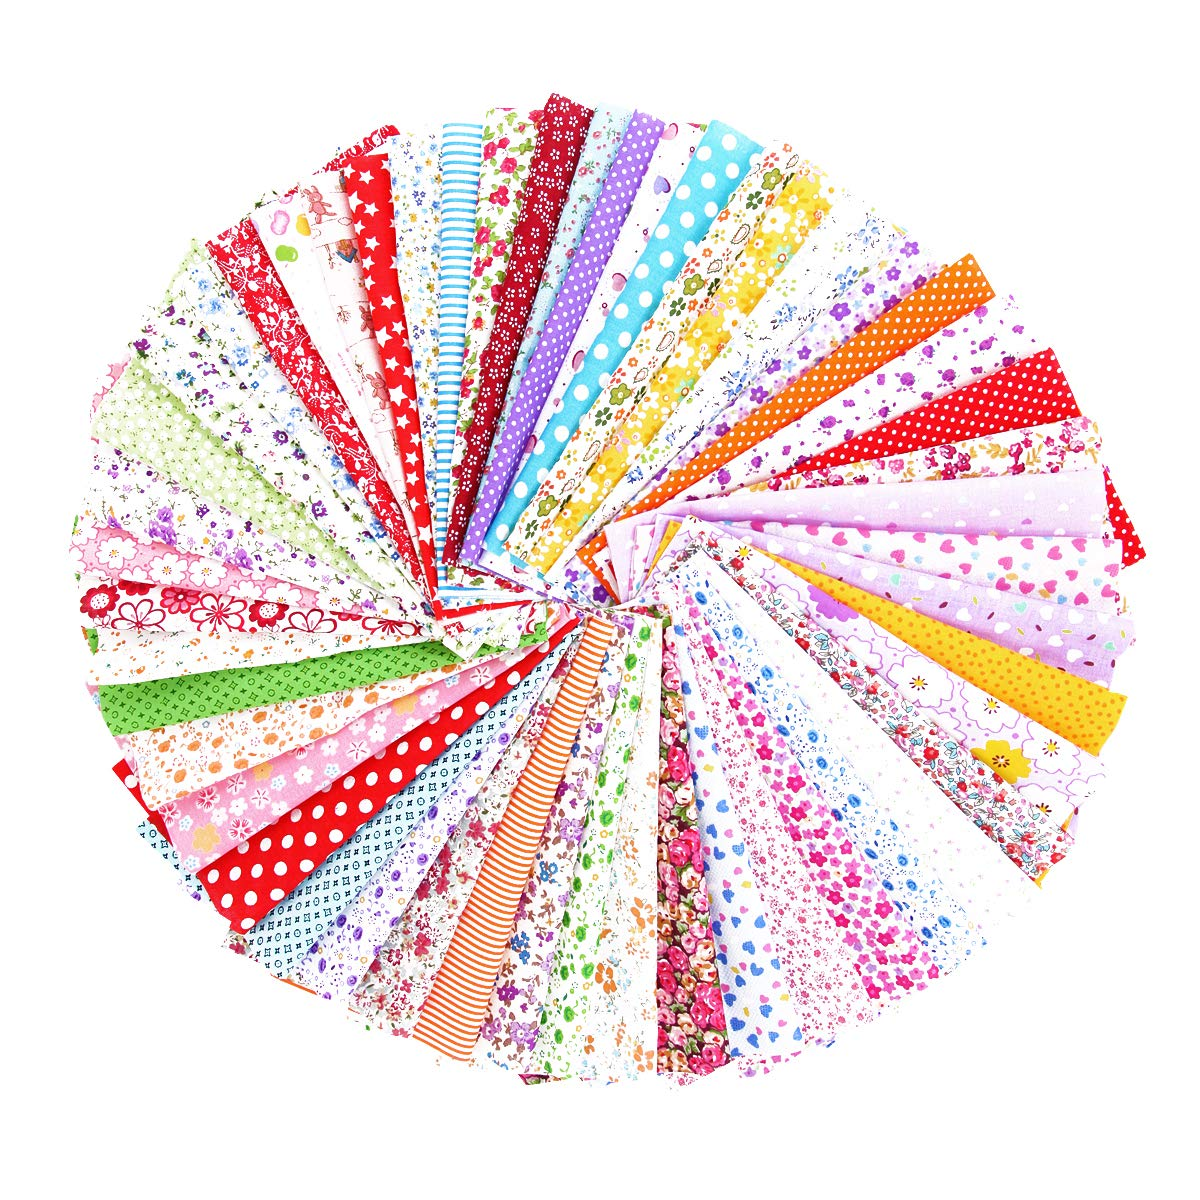 100PCS BcPowr 10 x 10cm Different Pattern Fabric Patchwork Craft Cotton DIY Sewing Scrapbooking Quilting Dot Pattern